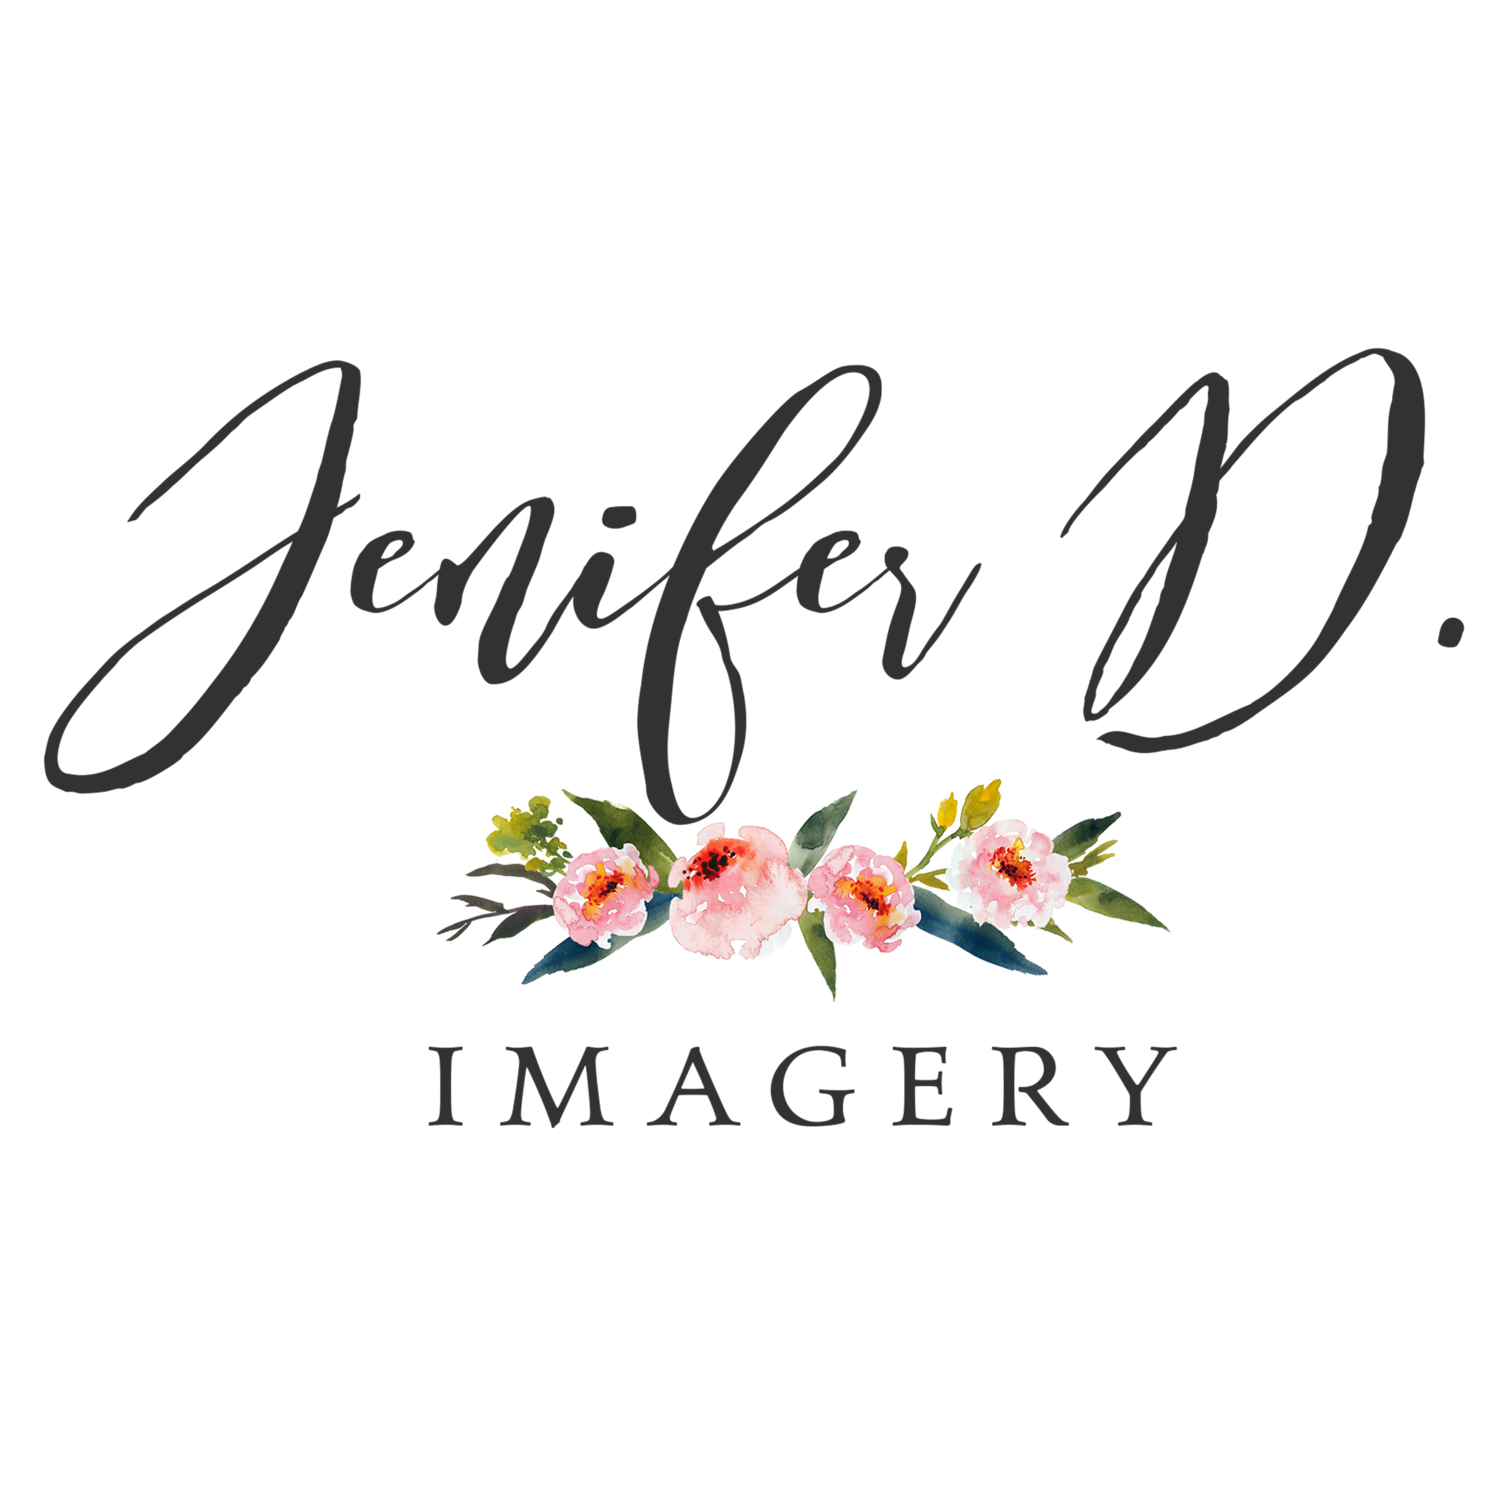 Jenifer D. Imagery